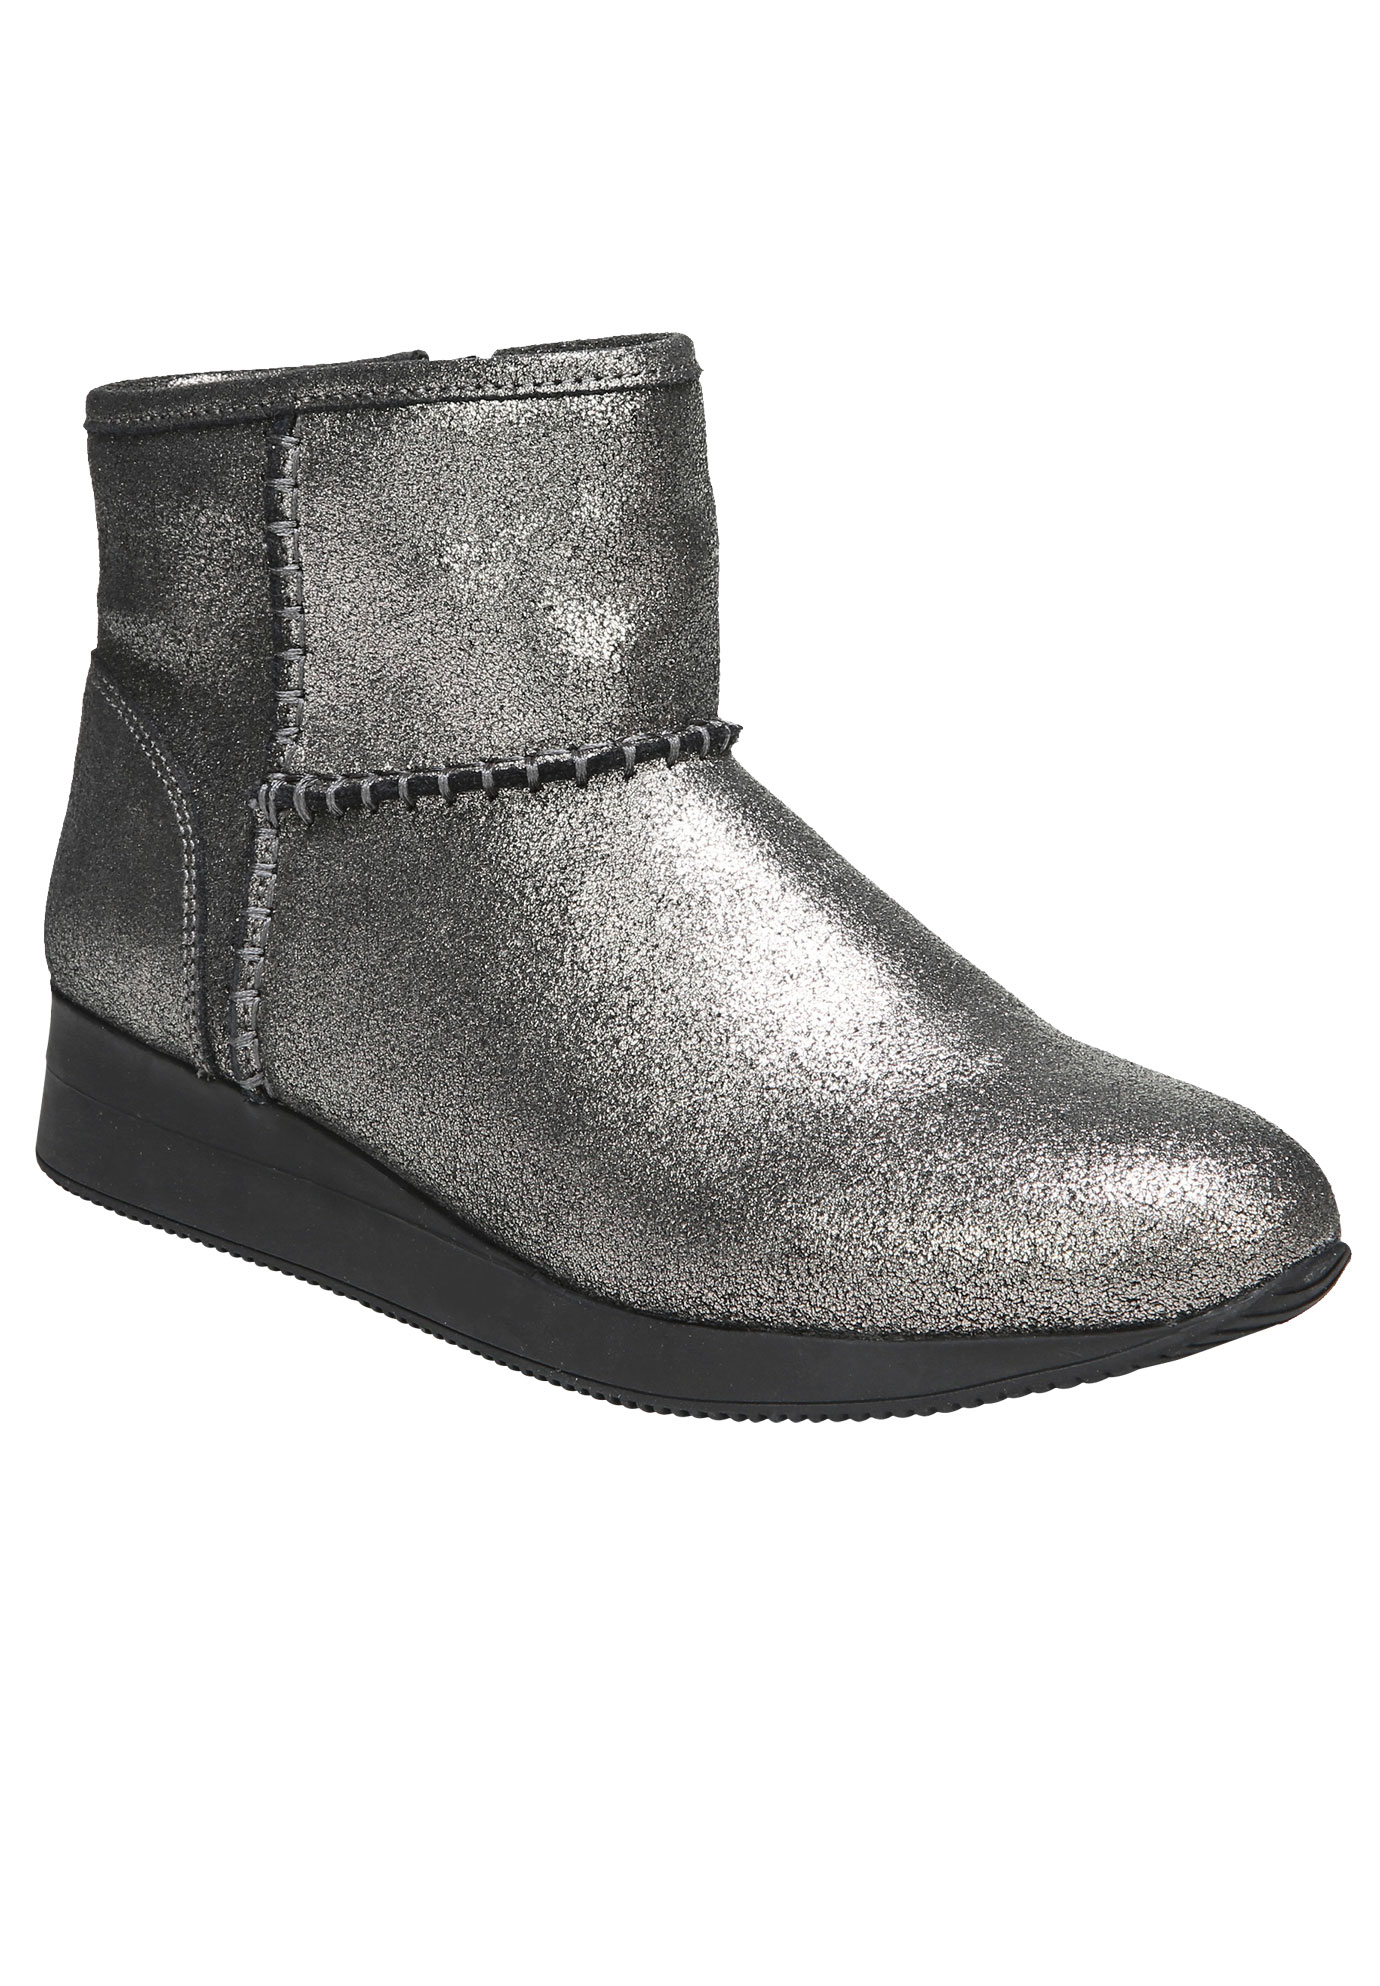 Julian Booties by Naturalizer®, ZINC PEWTER, hi-res